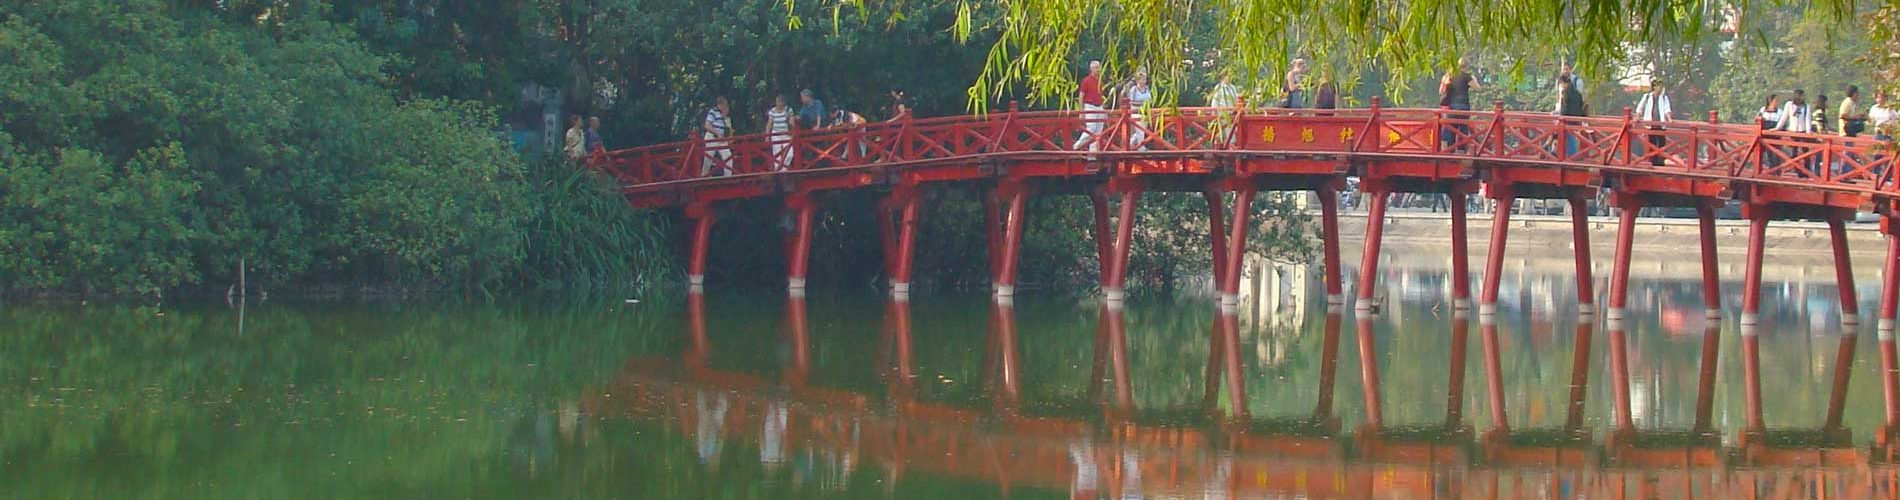 Hanoi-bridge-header